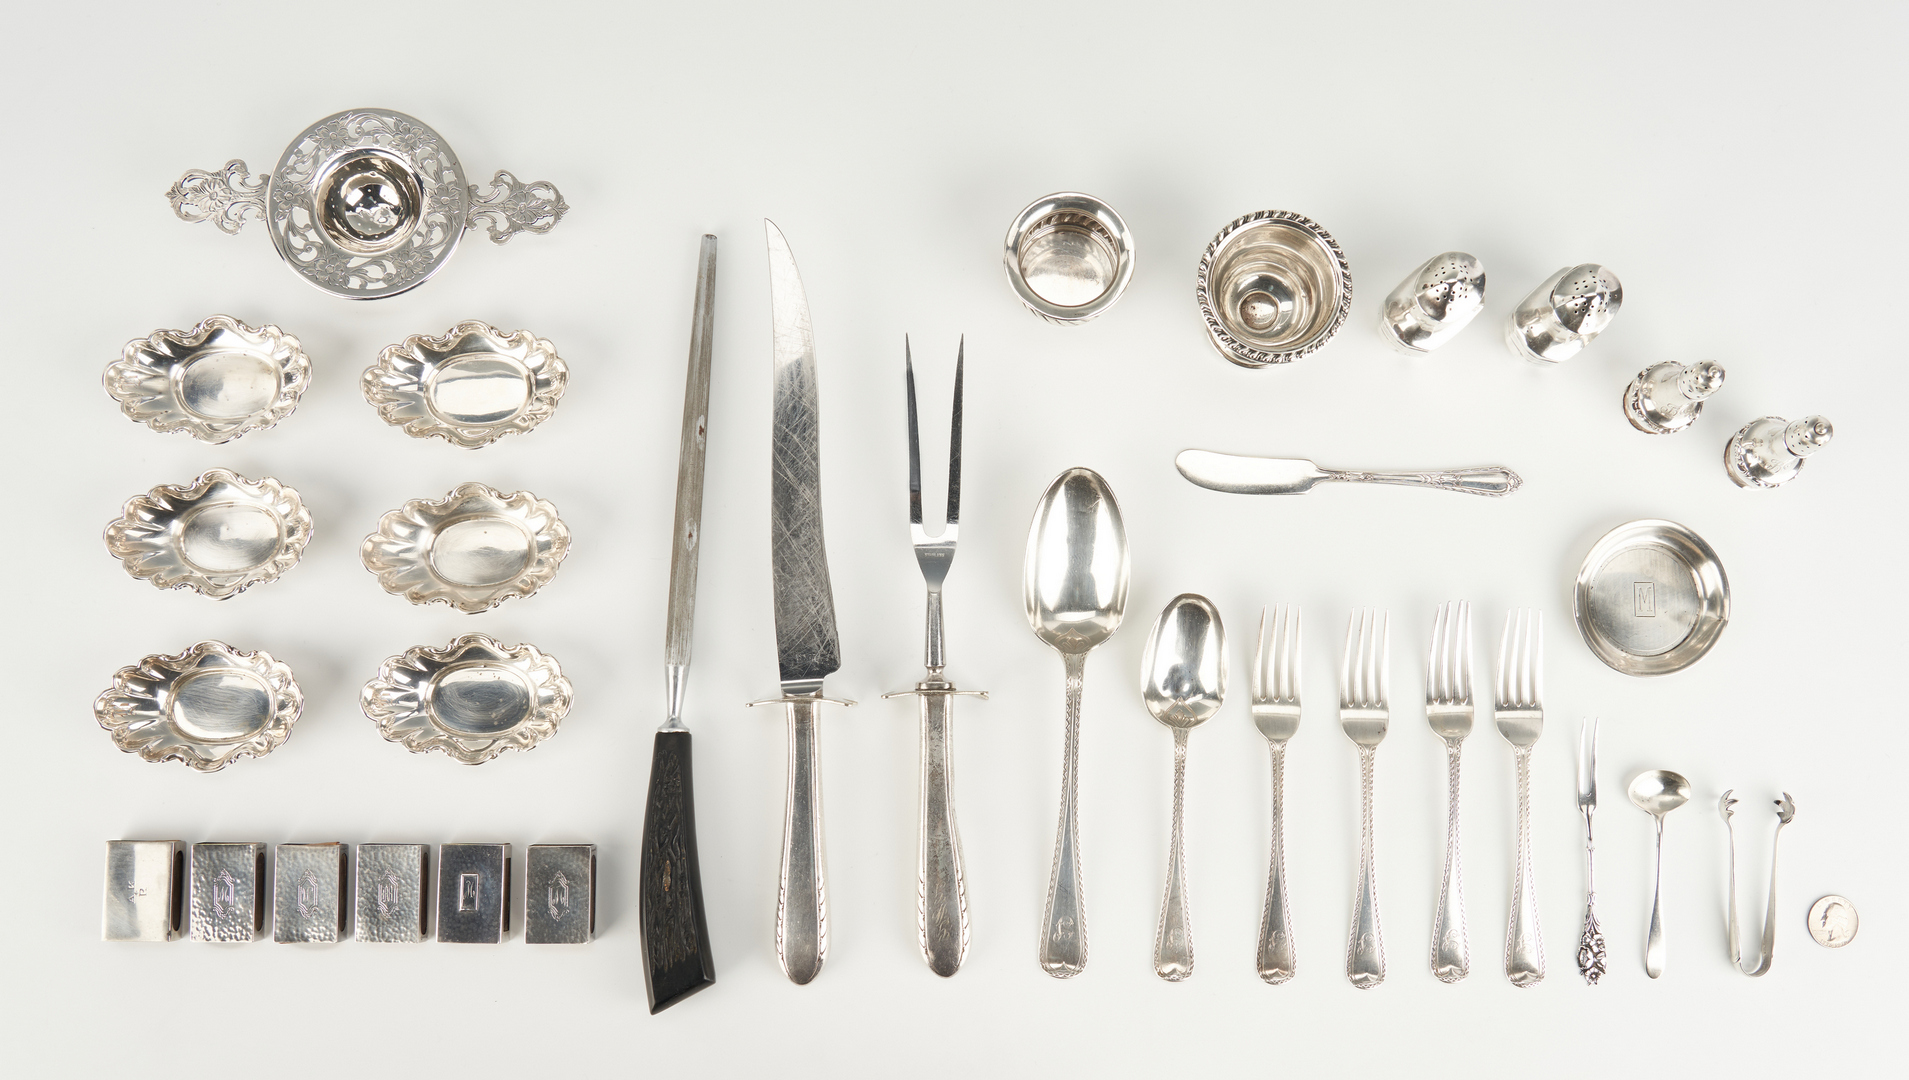 Lot 819: 32 Assorted Silver items inc. Nut Dishes, Matchbook Covers